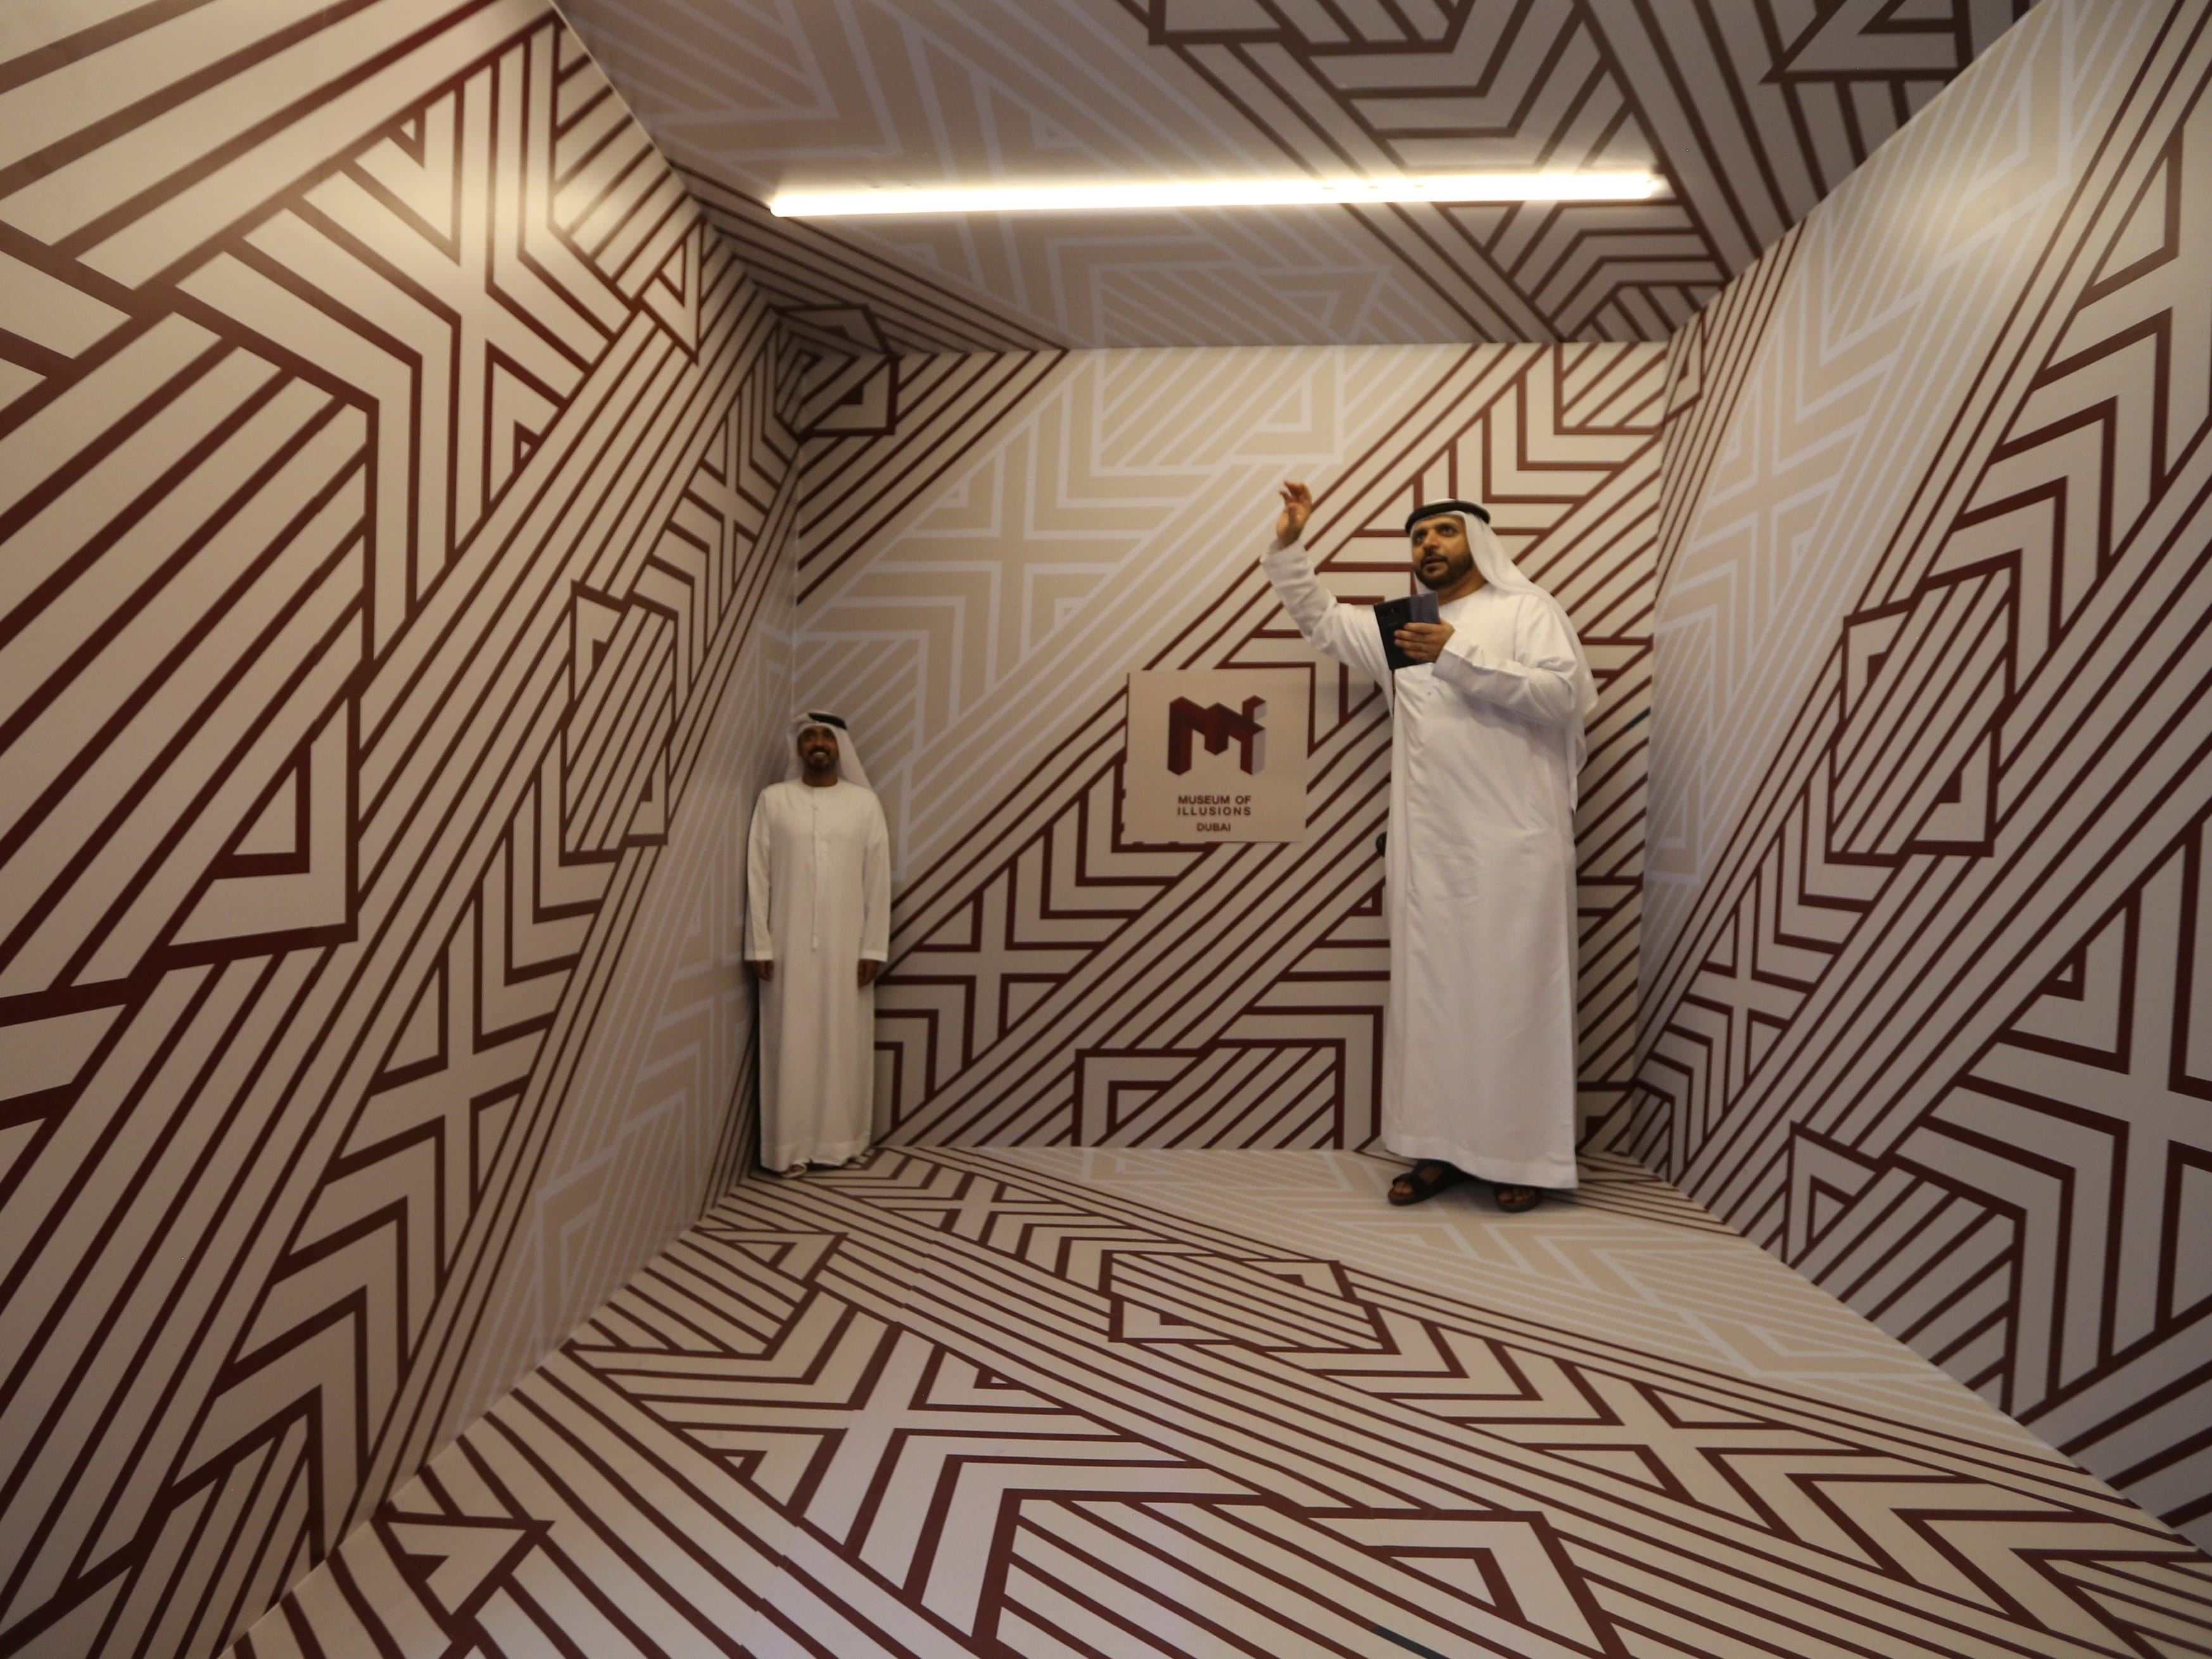 Museum visitors stand in the Ames Room at the Museum of Illusions at Al Seef near the Dubai Creek in Gulf emirate of Dubai, United Arab Emirates on Sept. 9, 2018.